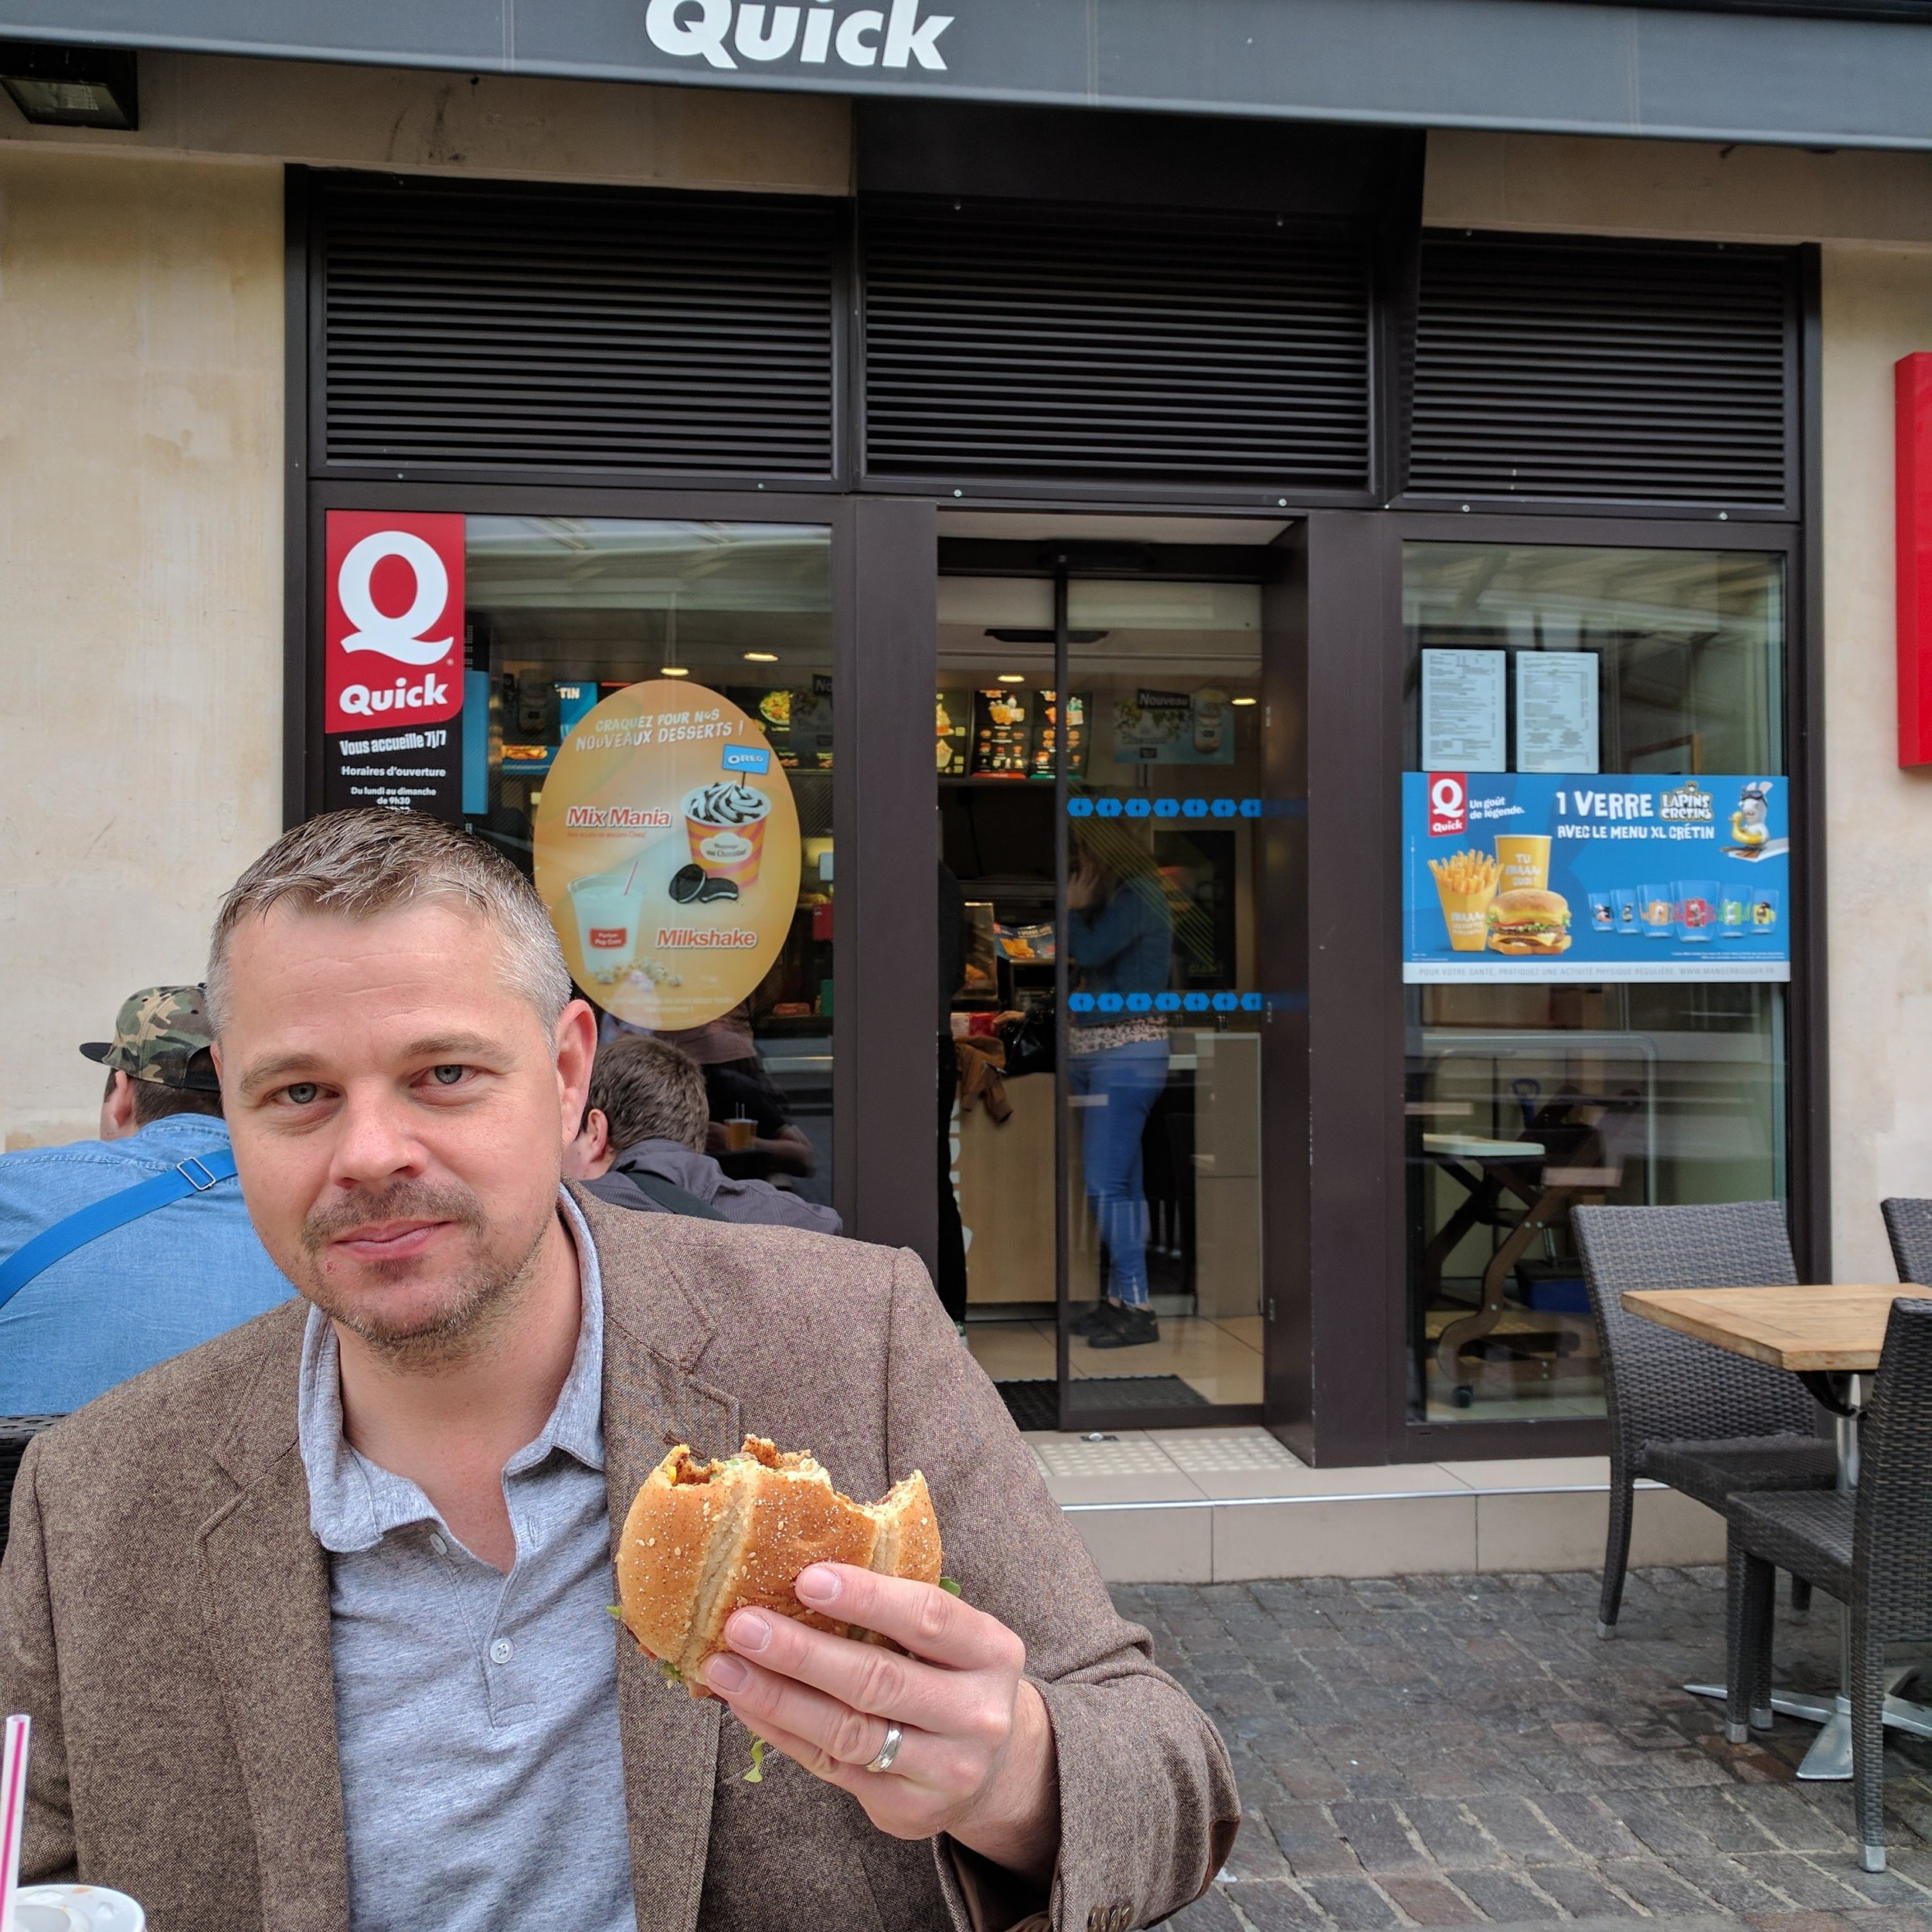 ....while at the same time, Paul and I were eating Quick Burgers.